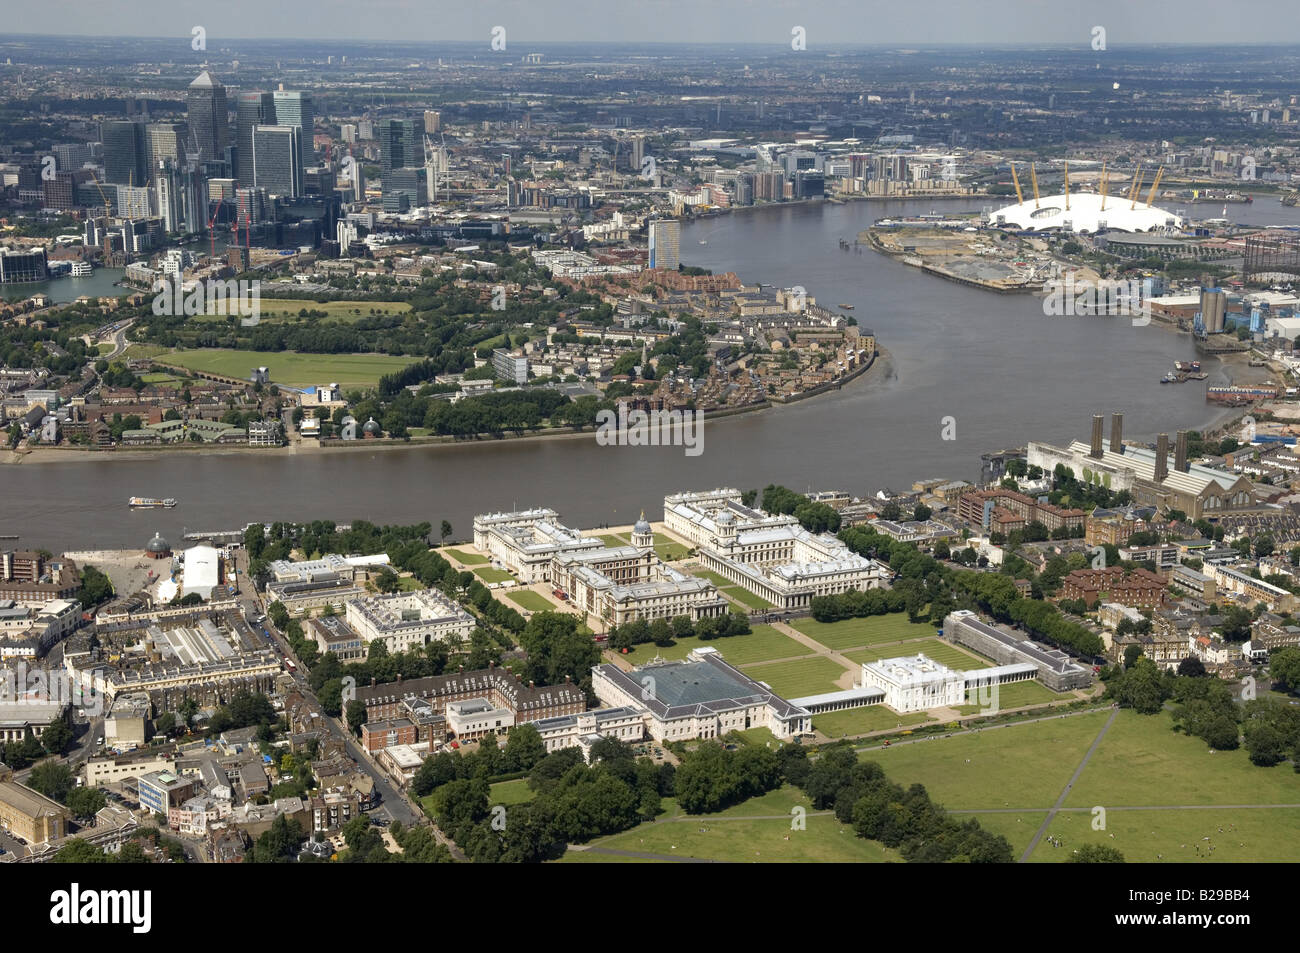 Greenwich across to Isle of Dogs Date 12 03 2008 Ref ZB648 111149 0039 COMPULSORY CREDIT World Pictures Photoshot - Stock Image